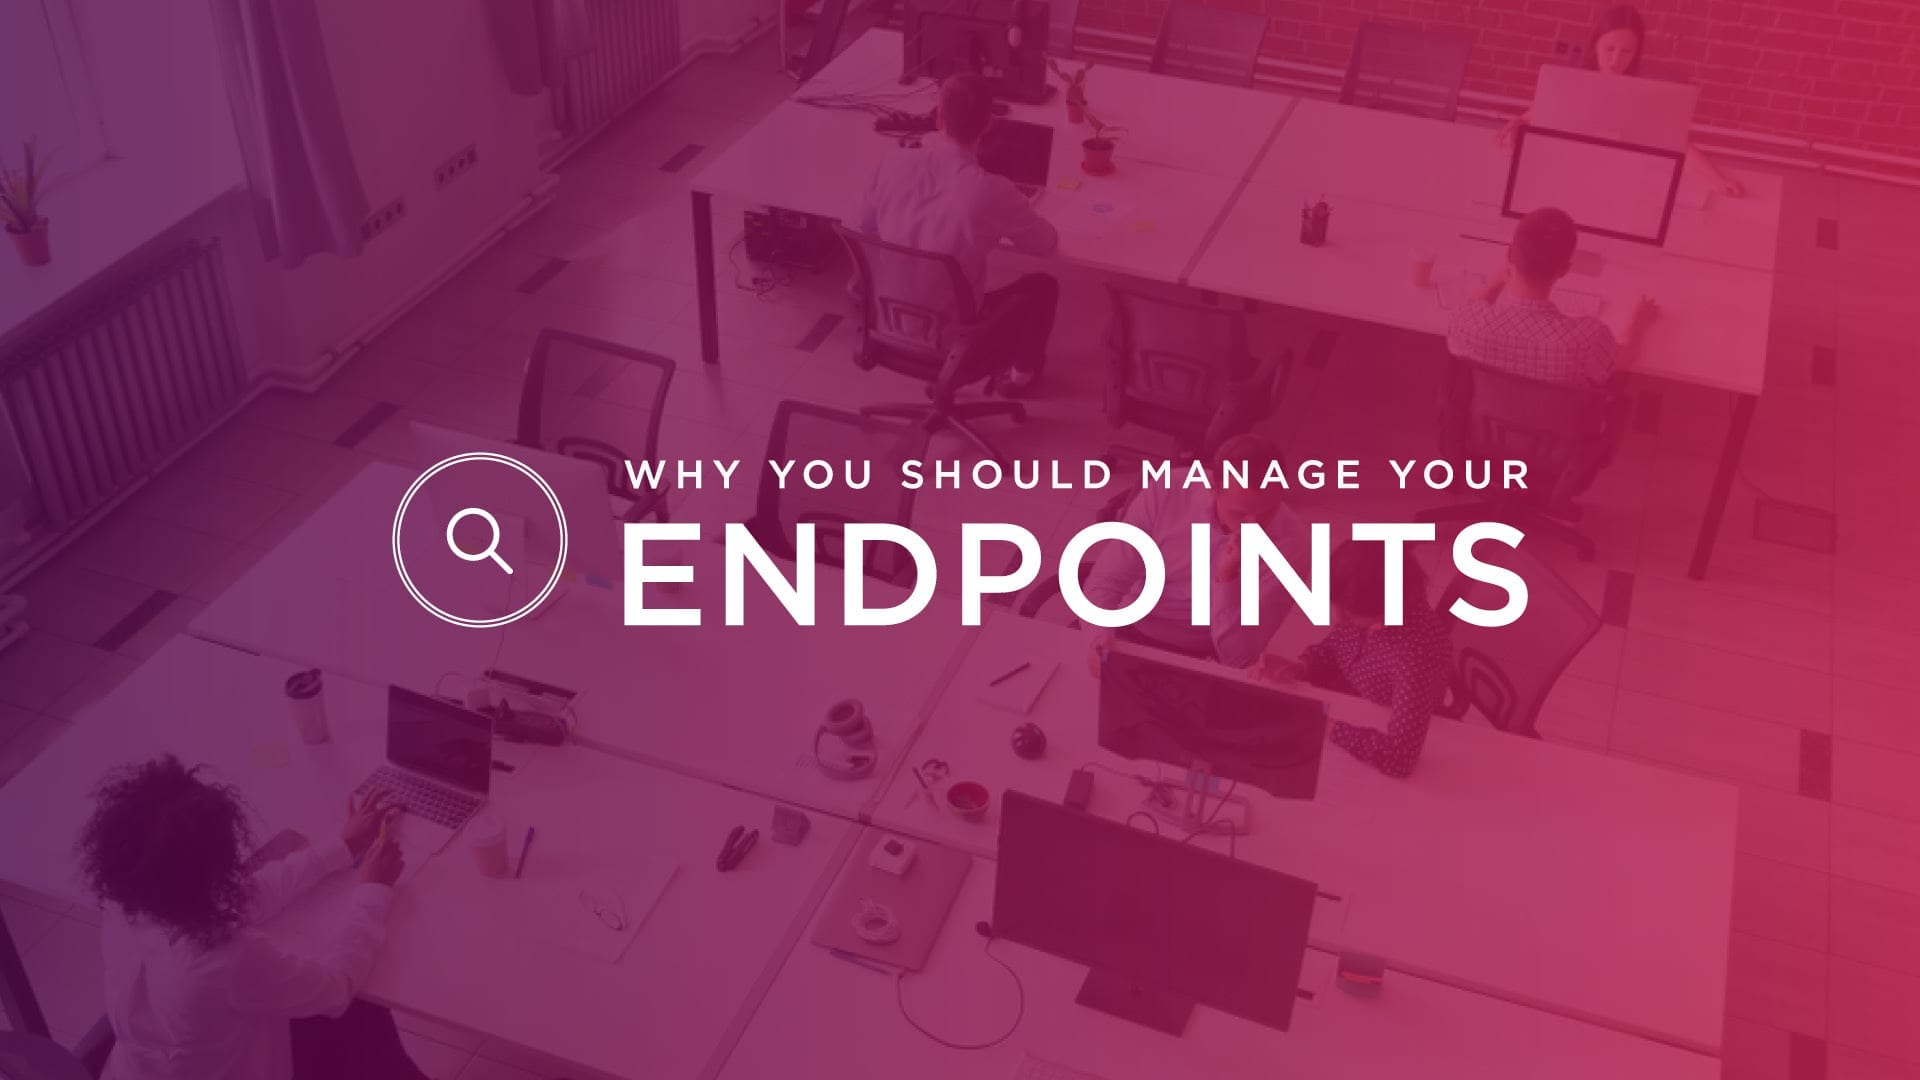 Why You Should Manage Your Endpoints